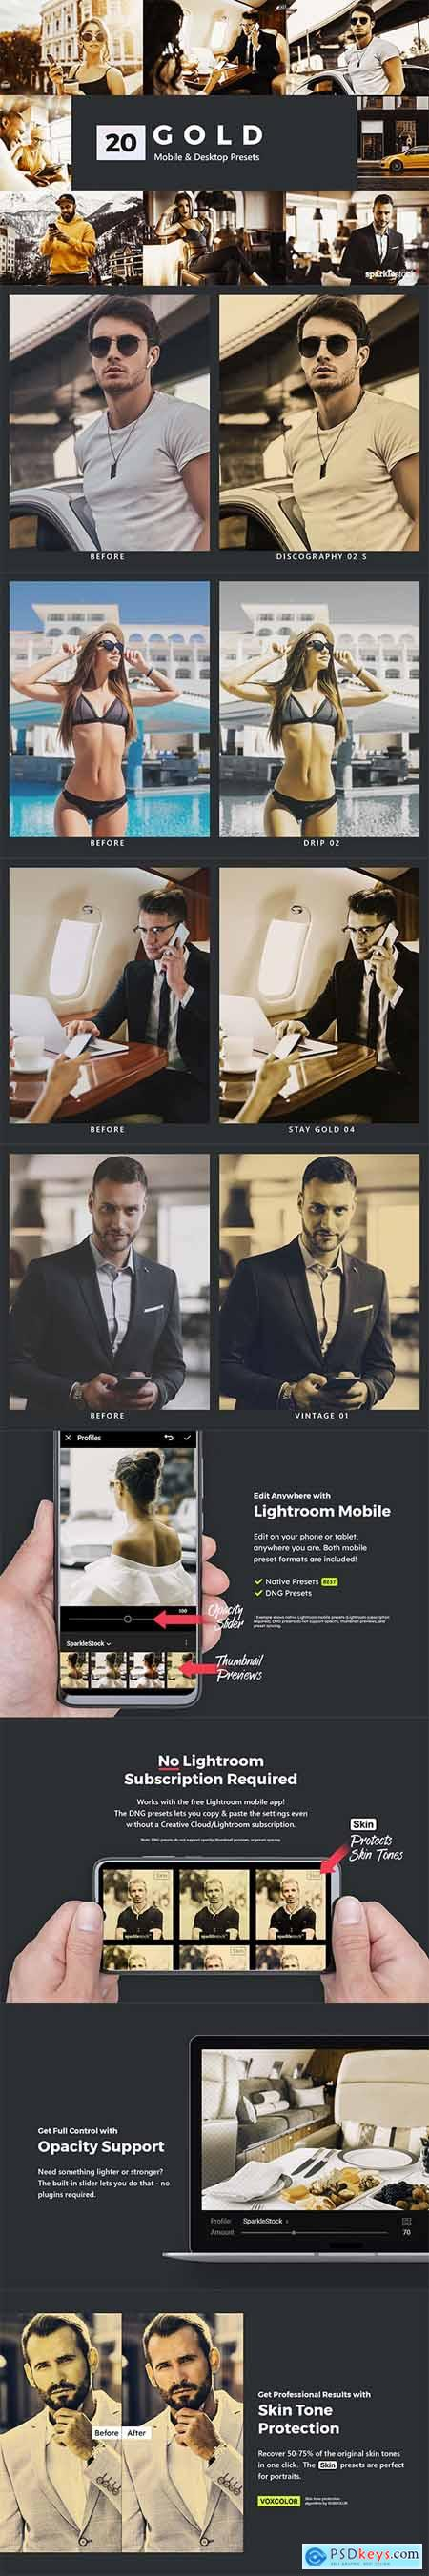 20 Gold Lightroom Presets and LUTs 27986347